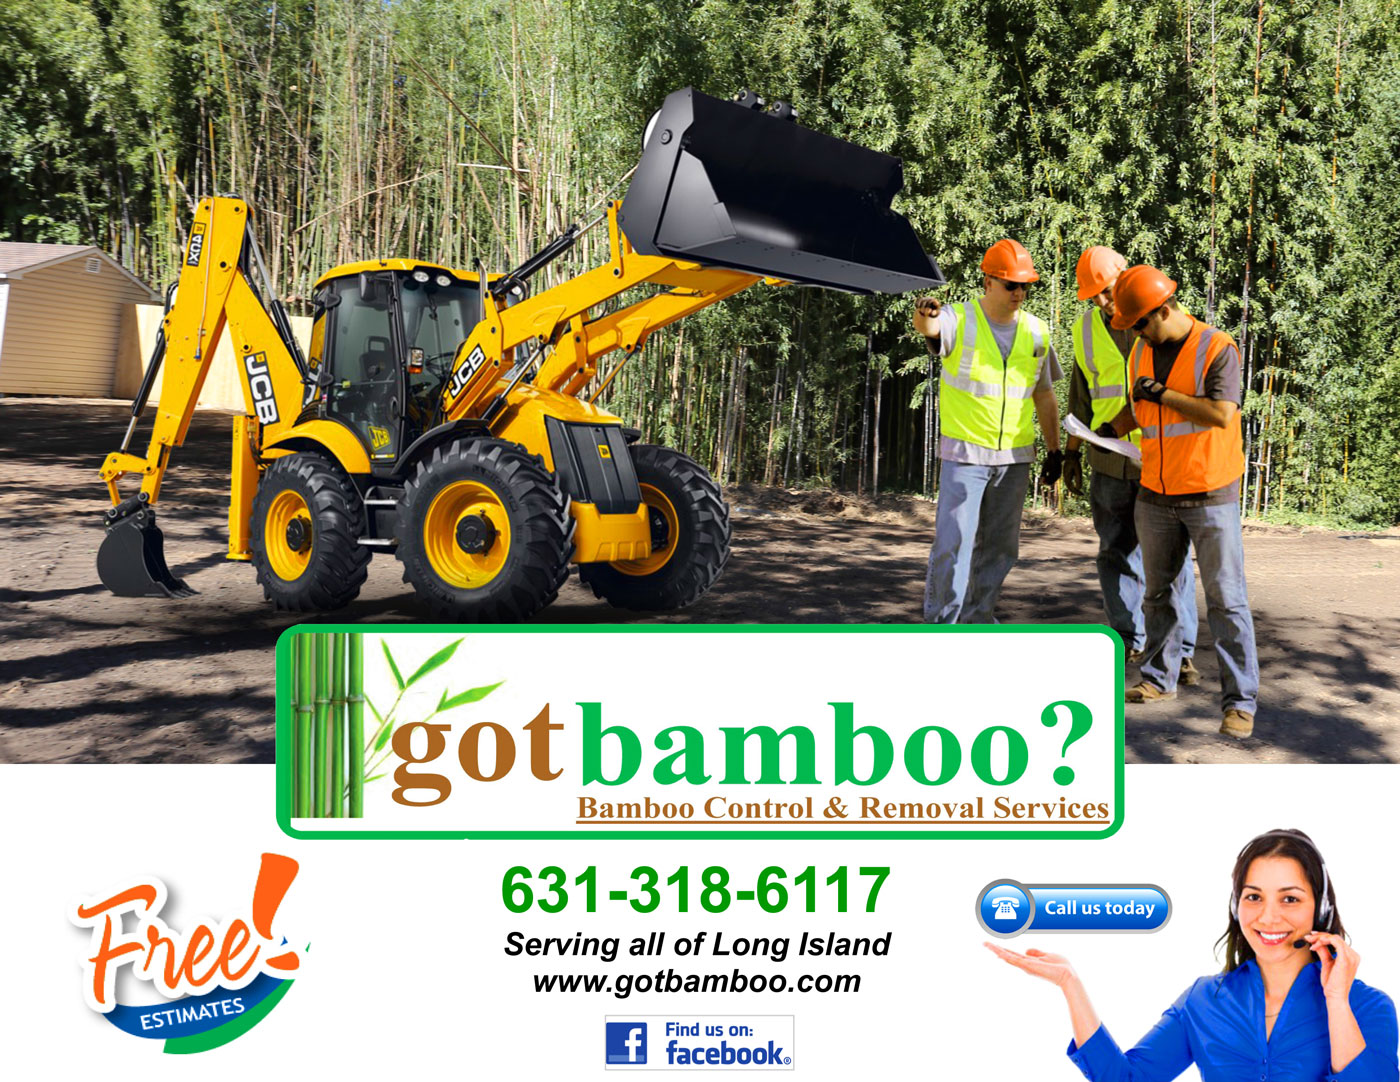 Got Bamboo? - Bamboo Removal